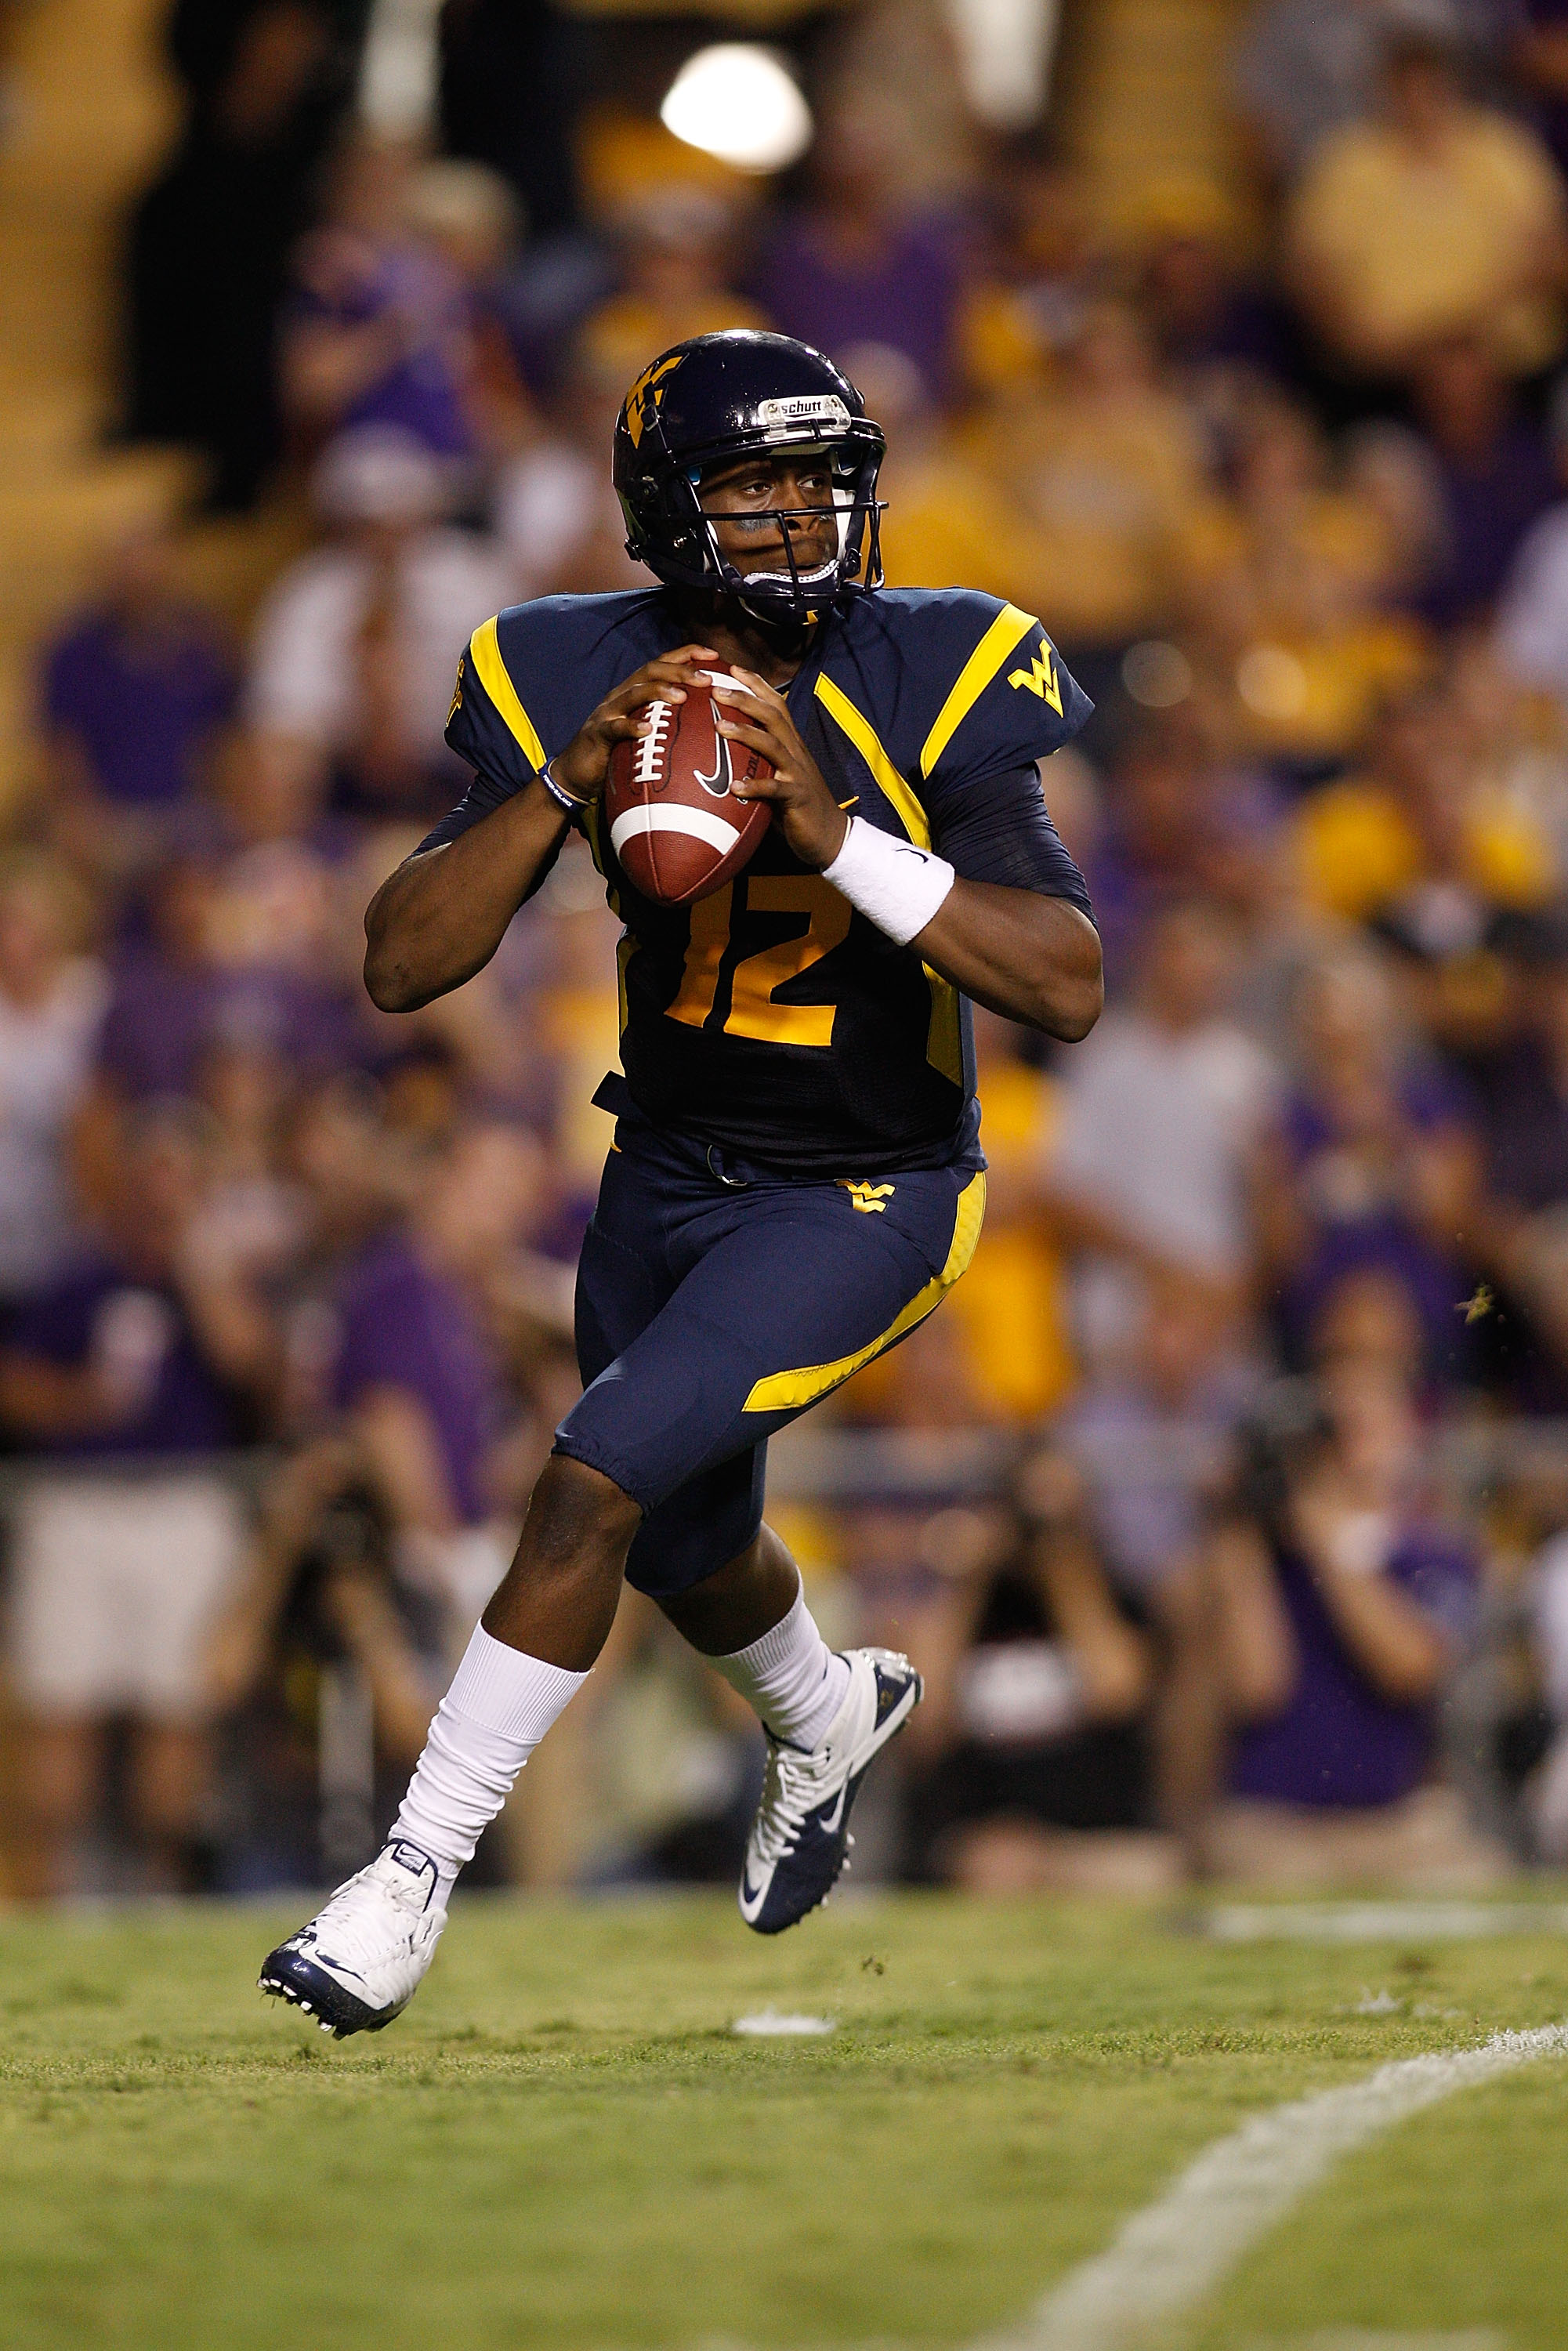 BATON ROUGE, LA - SEPTEMBER 25:  Quarterback Geno Smith #12 of the West Virginia Mountaineers in action against the Louisiana State University Tigers at Tiger Stadium on September 25, 2010 in Baton Rouge, Louisiana.  (Photo by Chris Graythen/Getty Images)